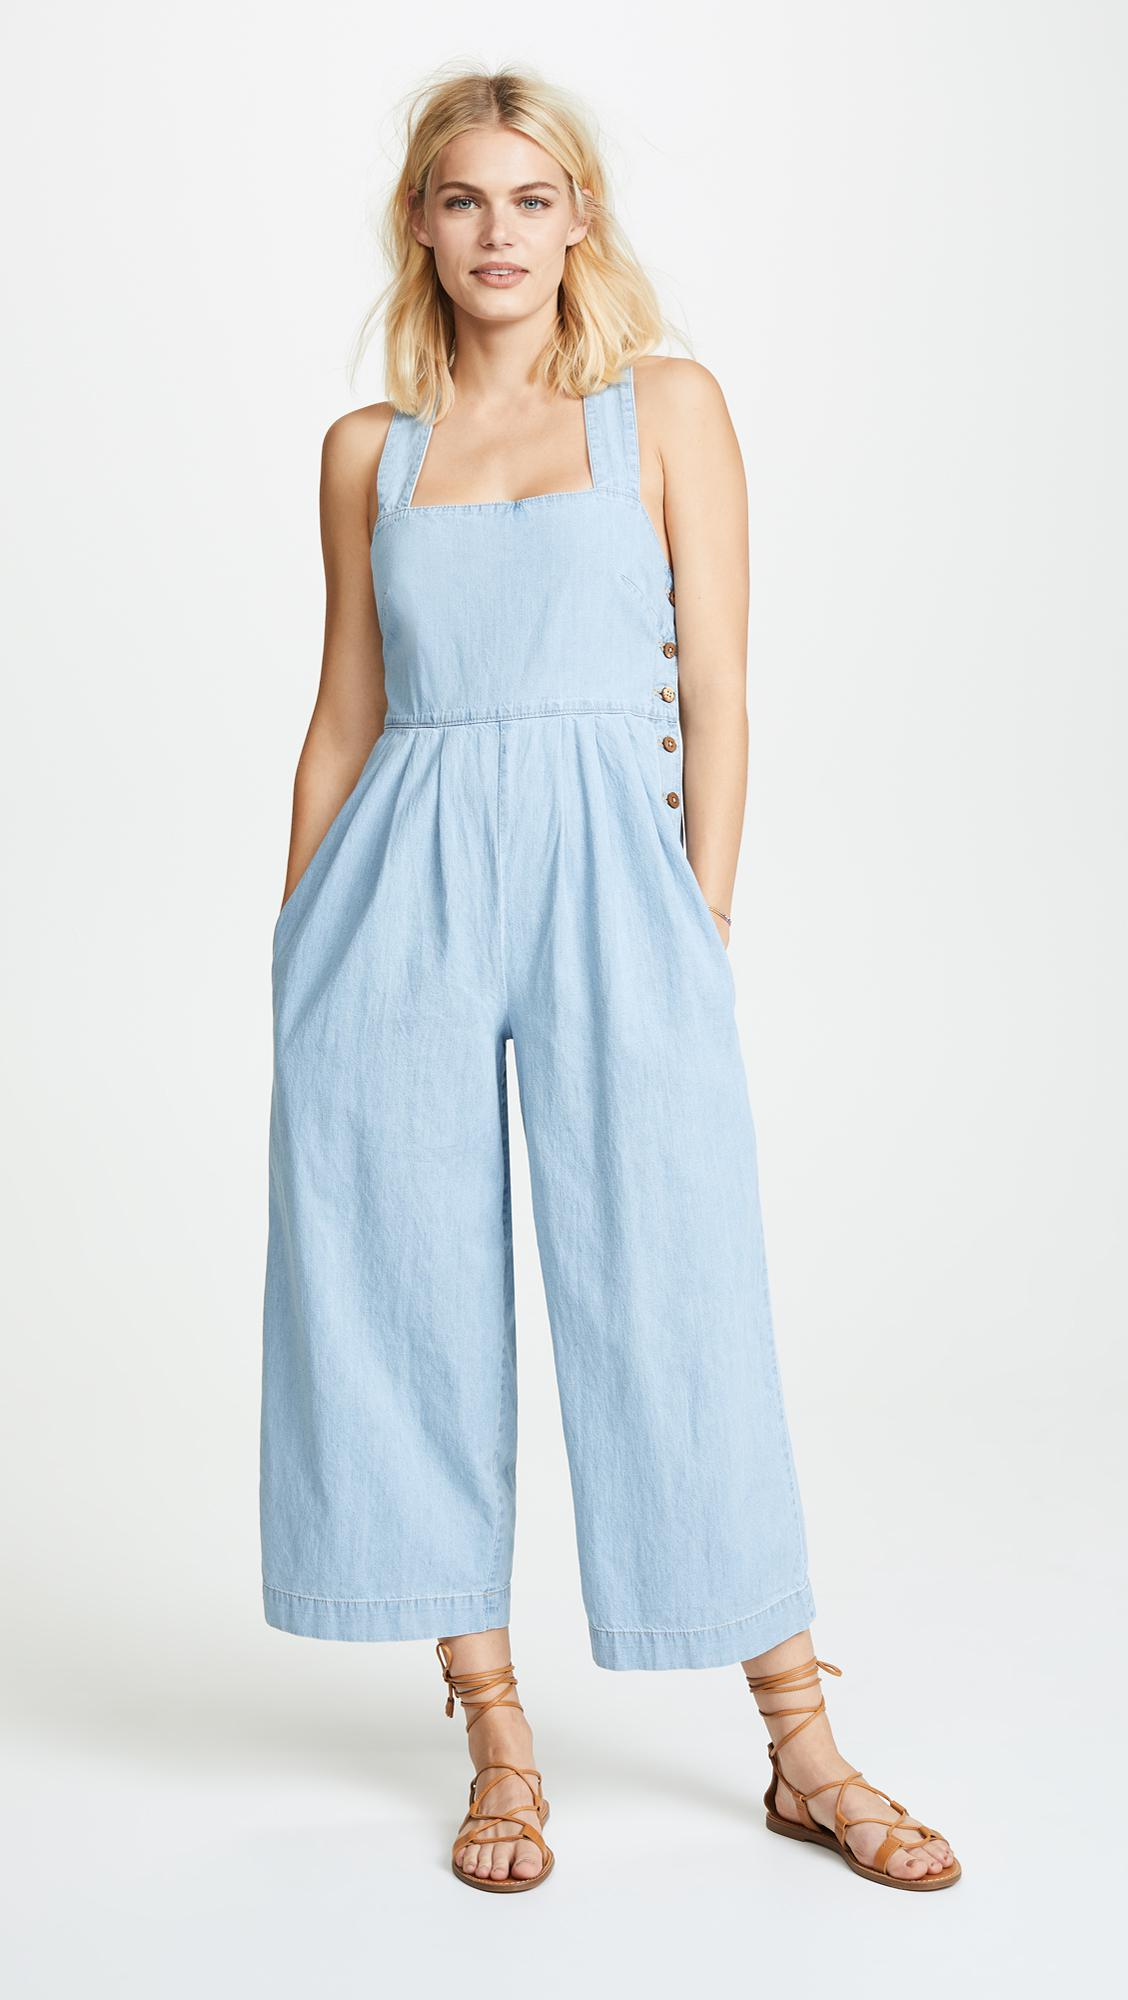 381050d07a9 Free People Fara Jumpsuit in Blue - Lyst